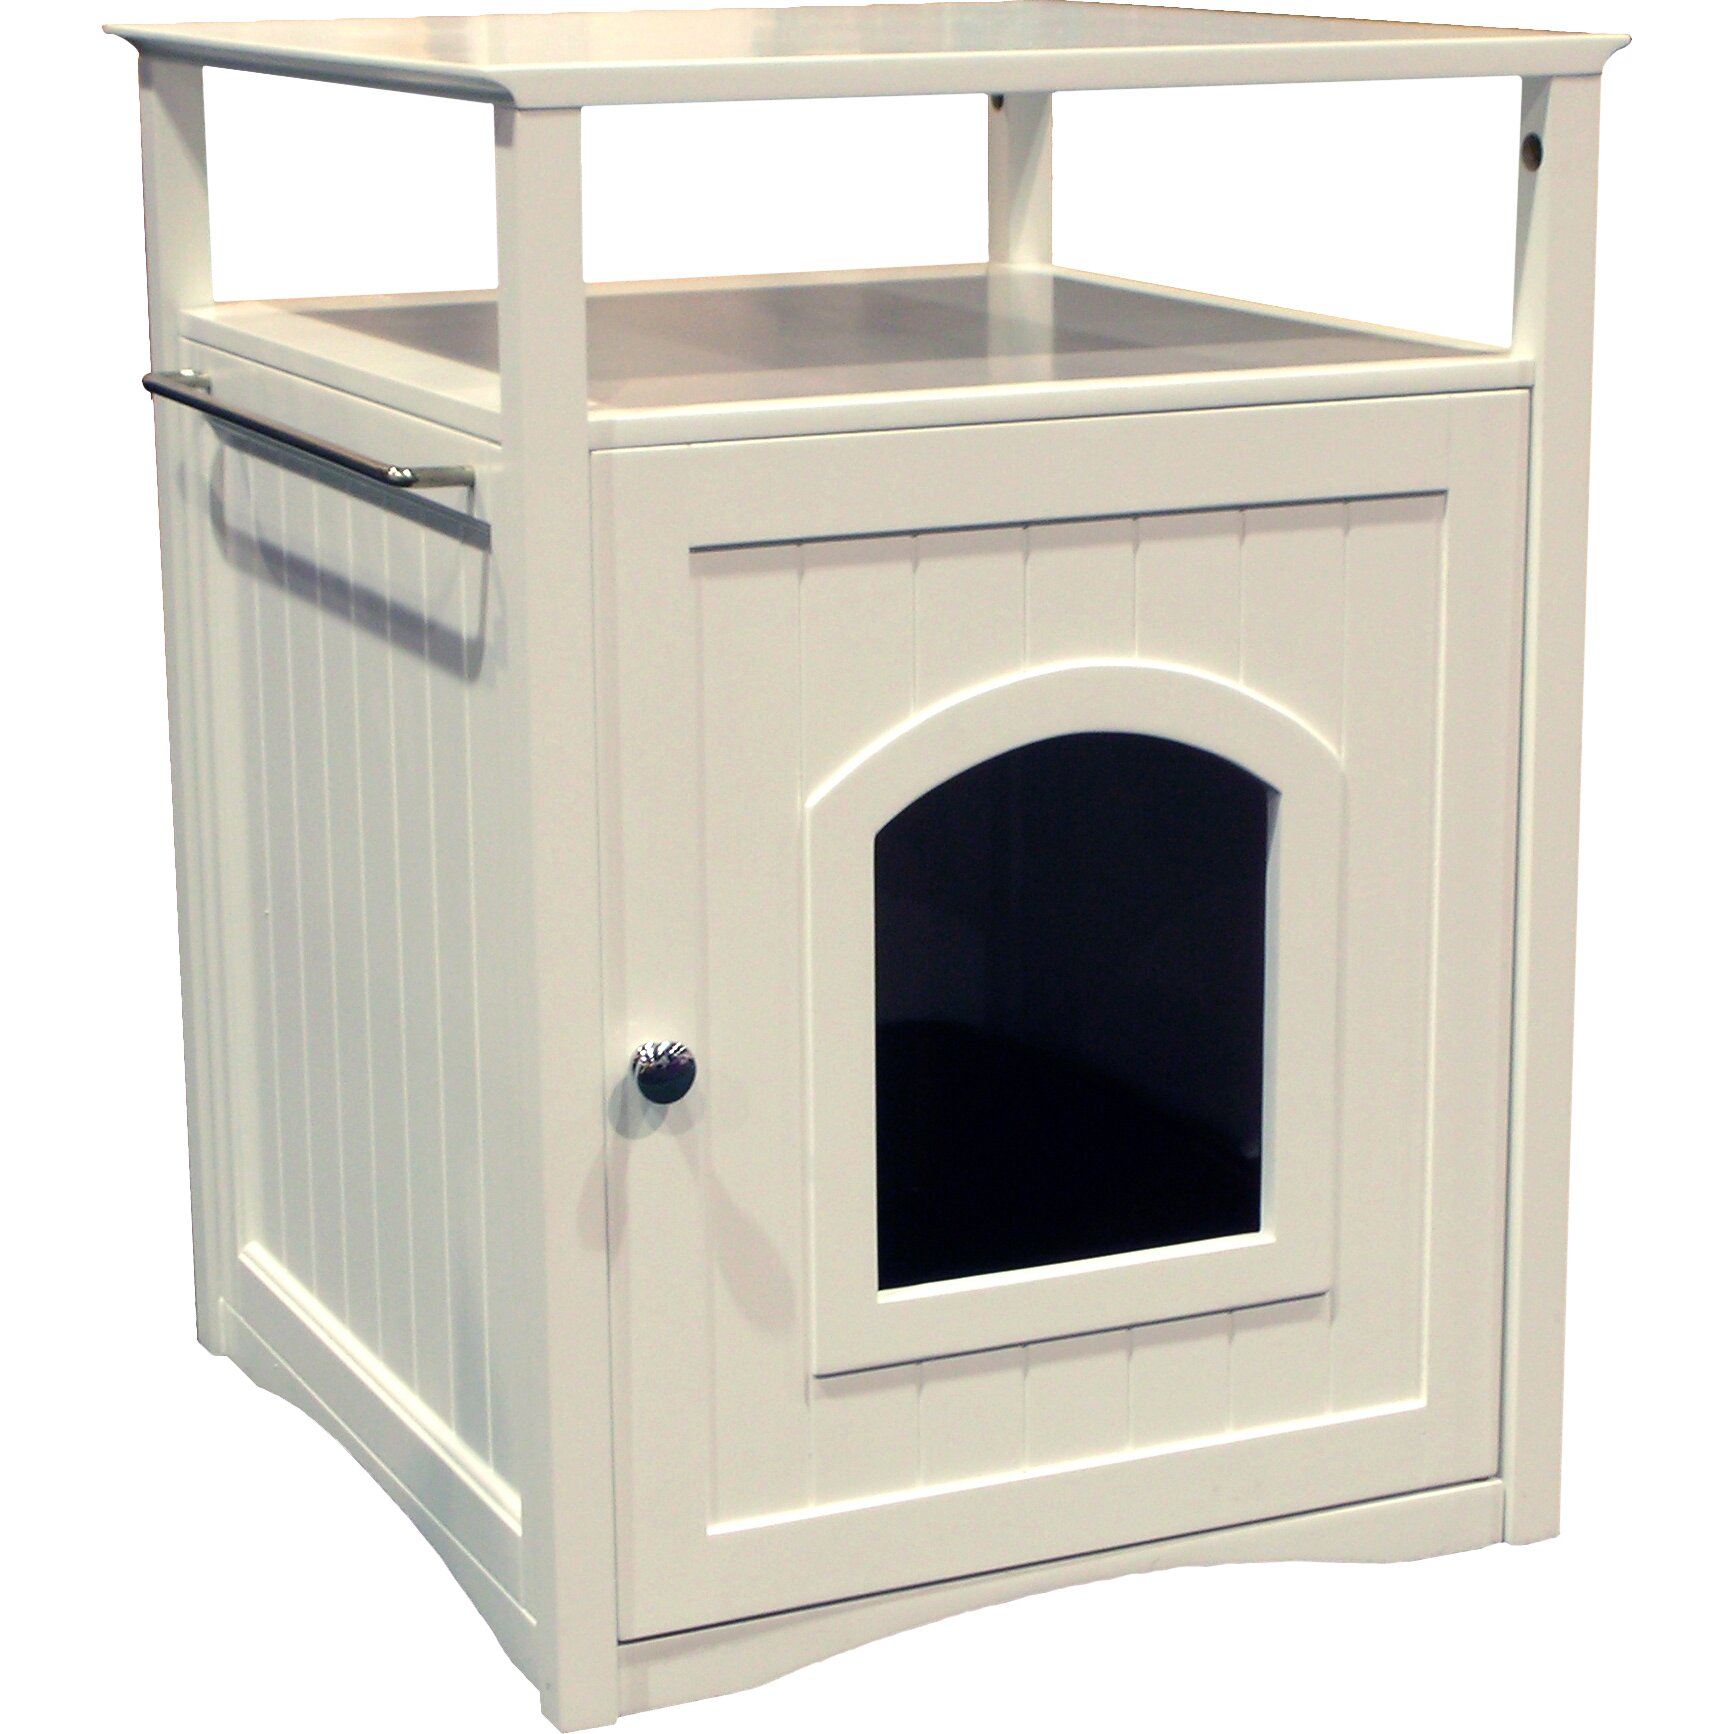 Wooden Litter Box Cabinets Litter Boxes Enclosures